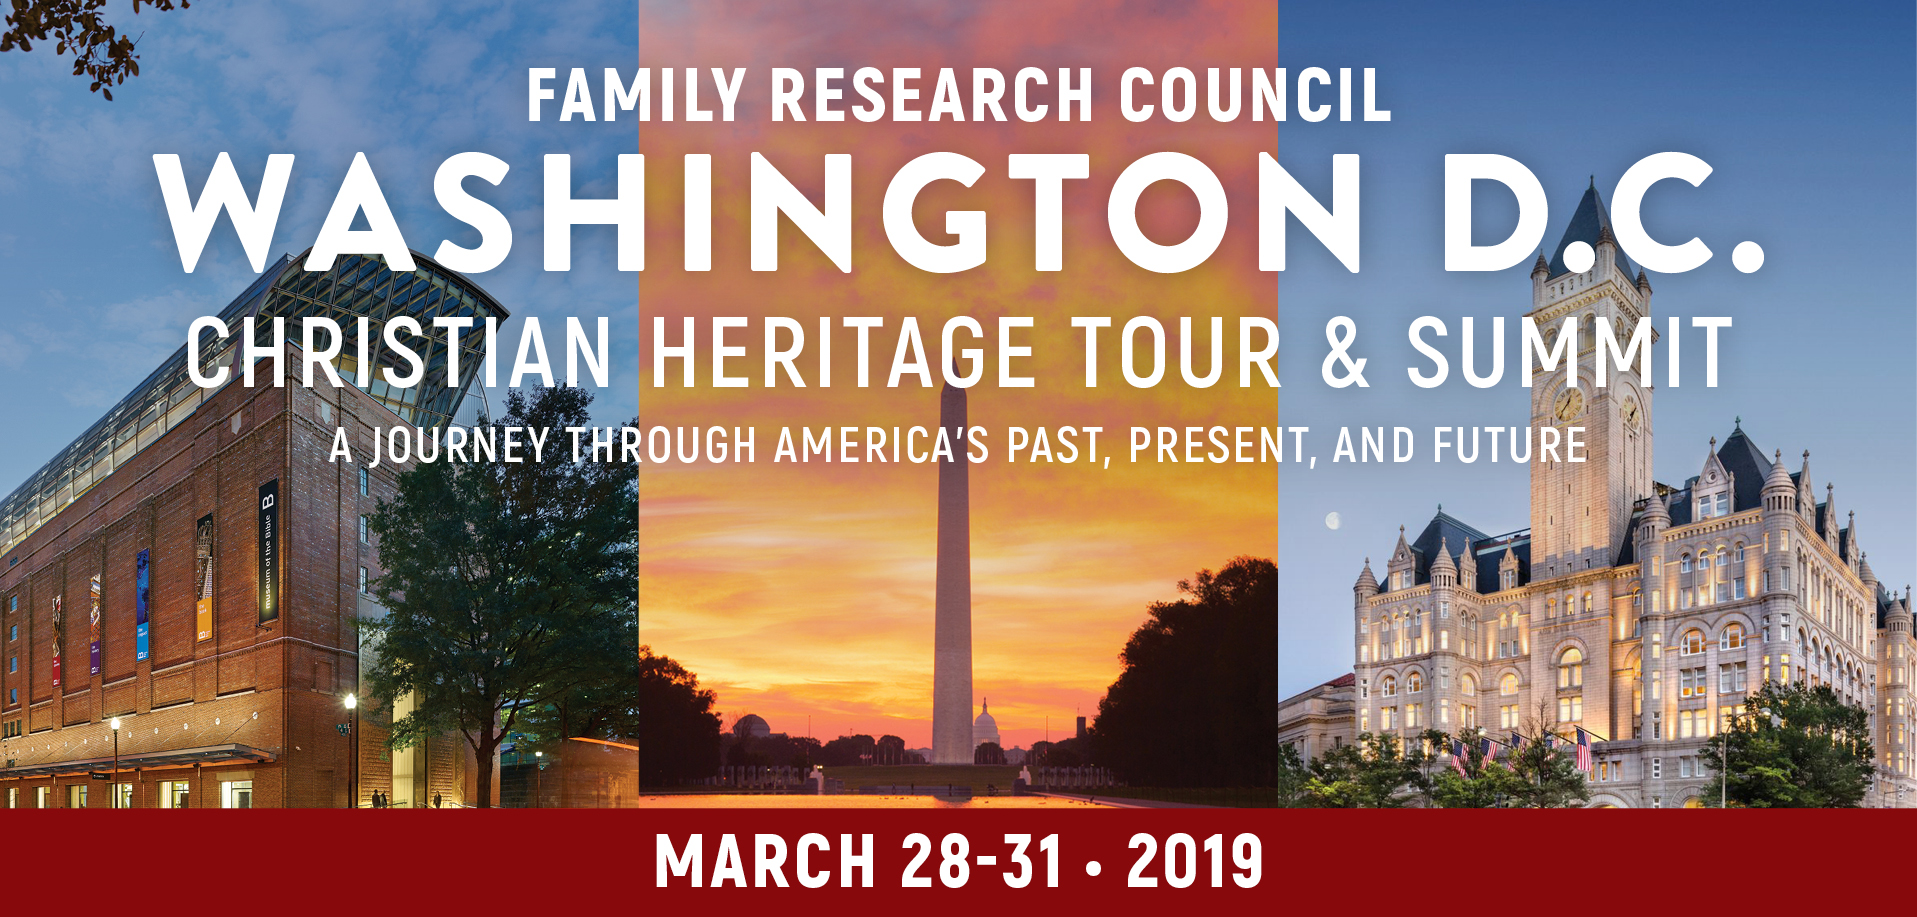 Take a Christian TourWOX with Family Research Council - Washington D.C. Heritage Tour and Summit - March 28-31, 2019